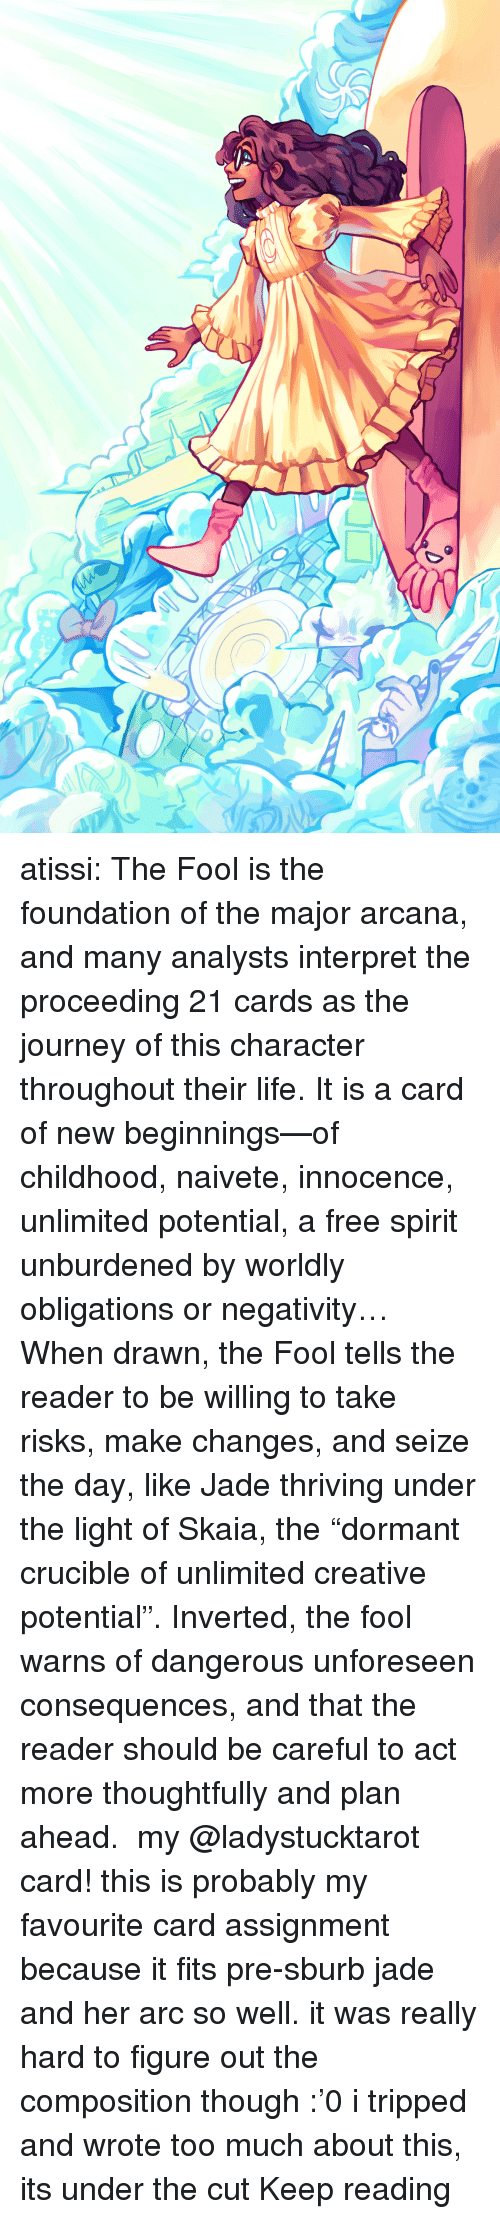 """Innocence: atissi:    The Fool is the foundation of the major arcana, and many analysts interpret the proceeding 21 cards as the journey of this character throughout their life. It is a card of new beginnings—of childhood, naivete, innocence, unlimited potential, a free spirit unburdened by worldly obligations or negativity… When drawn, the Fool tells the reader to be willing to take risks, make changes, and seize the day, like Jade thriving under the light of Skaia, the """"dormant crucible of unlimited creative potential"""". Inverted, the fool warns of dangerous unforeseen consequences, and that the reader should be careful to act more thoughtfully and plan ahead. my @ladystucktarot card! this is probably my favourite card assignment because it fits pre-sburb jade and her arc so well. it was really hard to figure out the composition though :'0 i tripped and wrote too much about this, its under the cut Keep reading"""